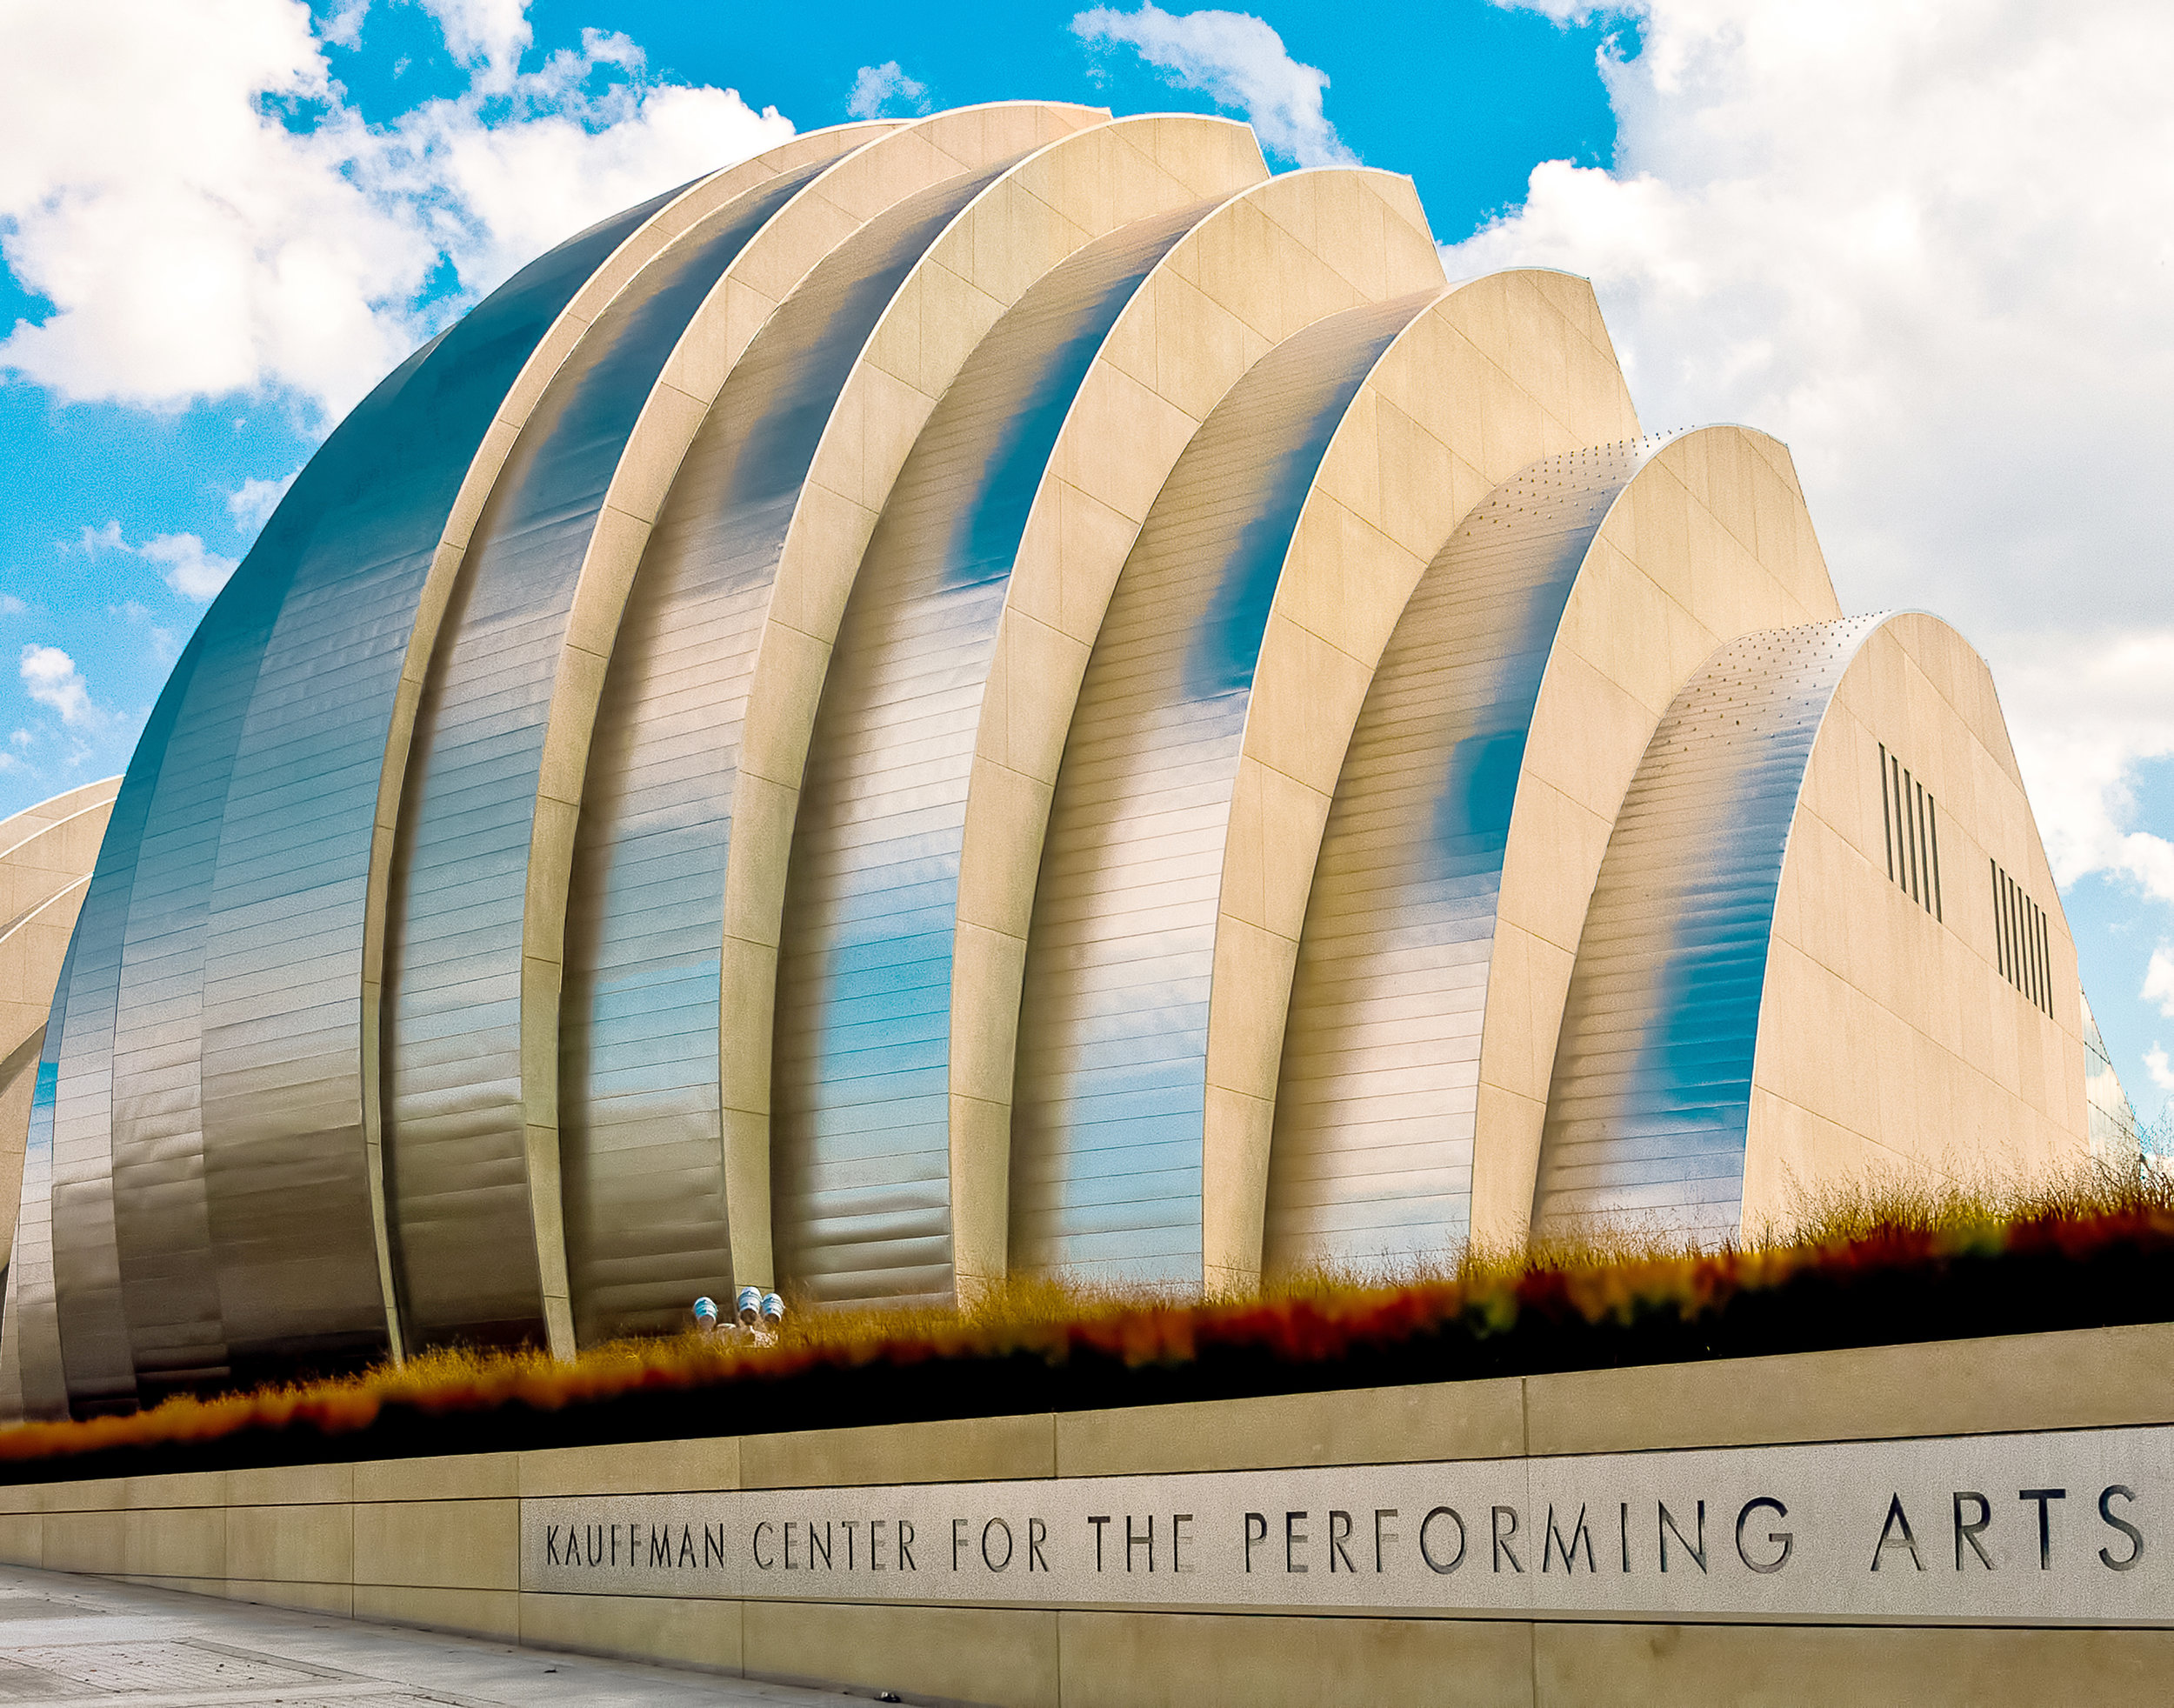 Kauffman Center for the Preforming Arts - Kansas City, MO